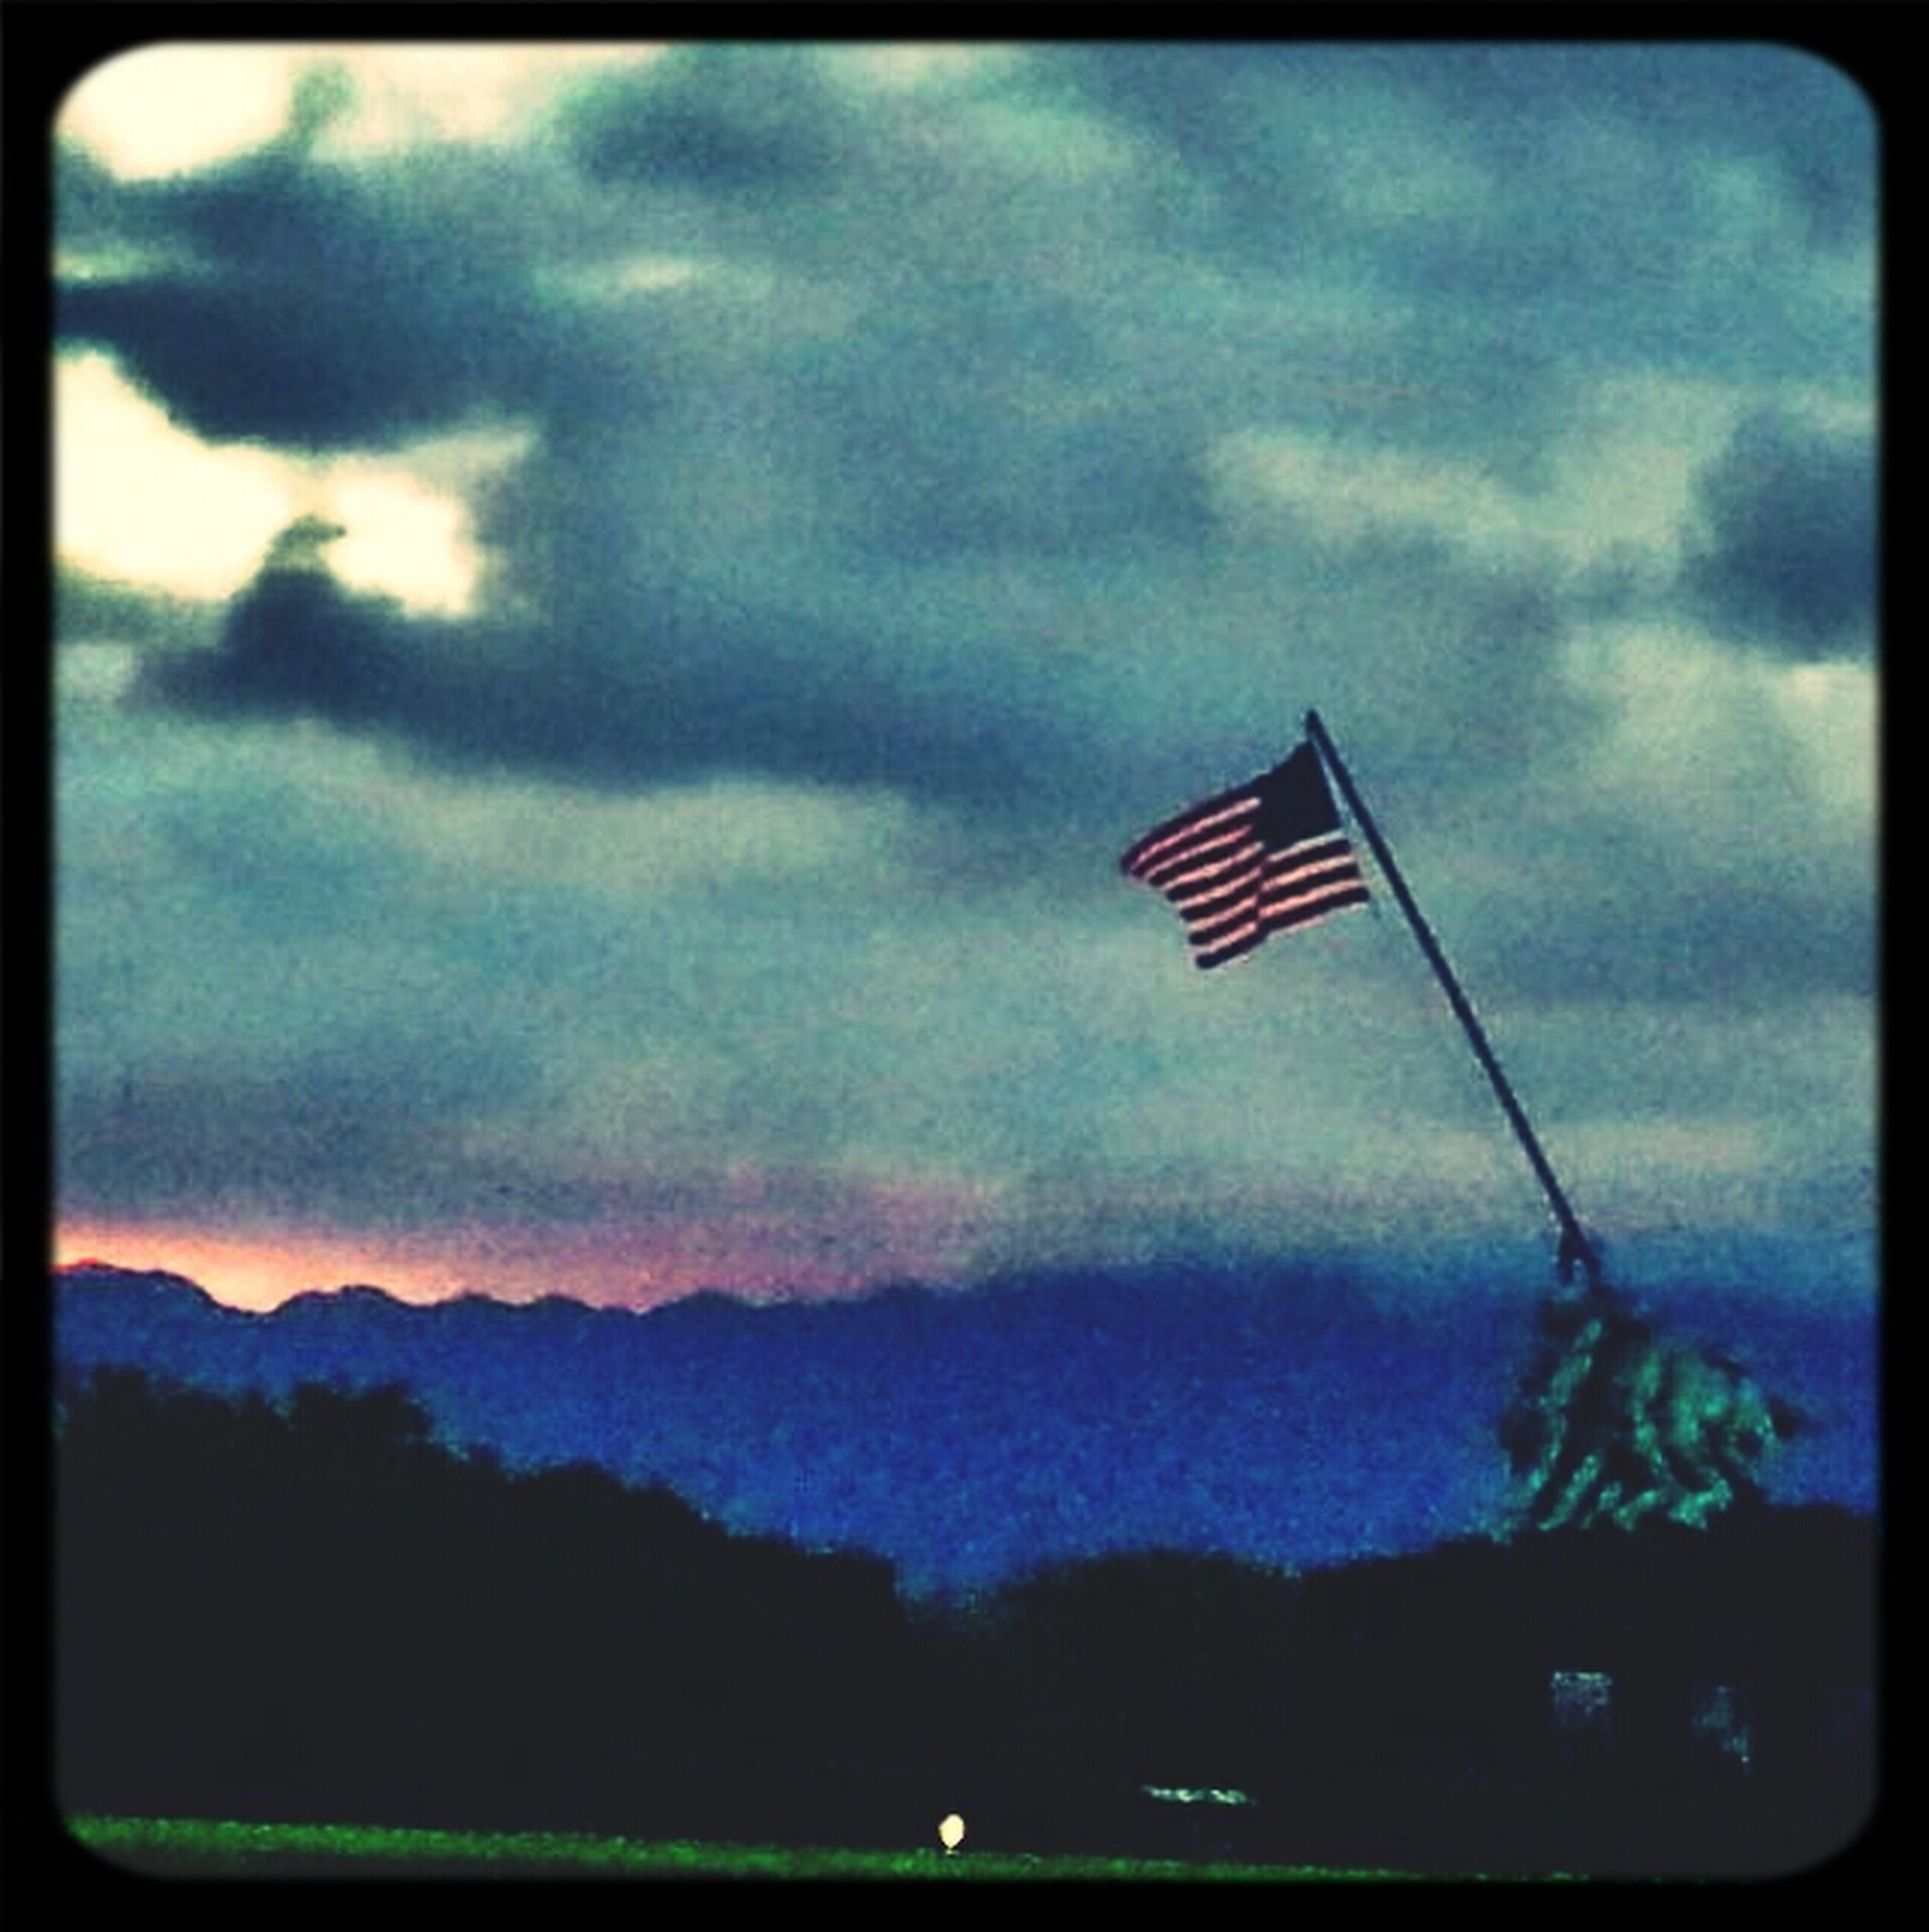 flag, sky, transfer print, identity, patriotism, national flag, low angle view, american flag, cloud - sky, auto post production filter, wind, cloud, red, cloudy, pole, nature, outdoors, no people, day, culture